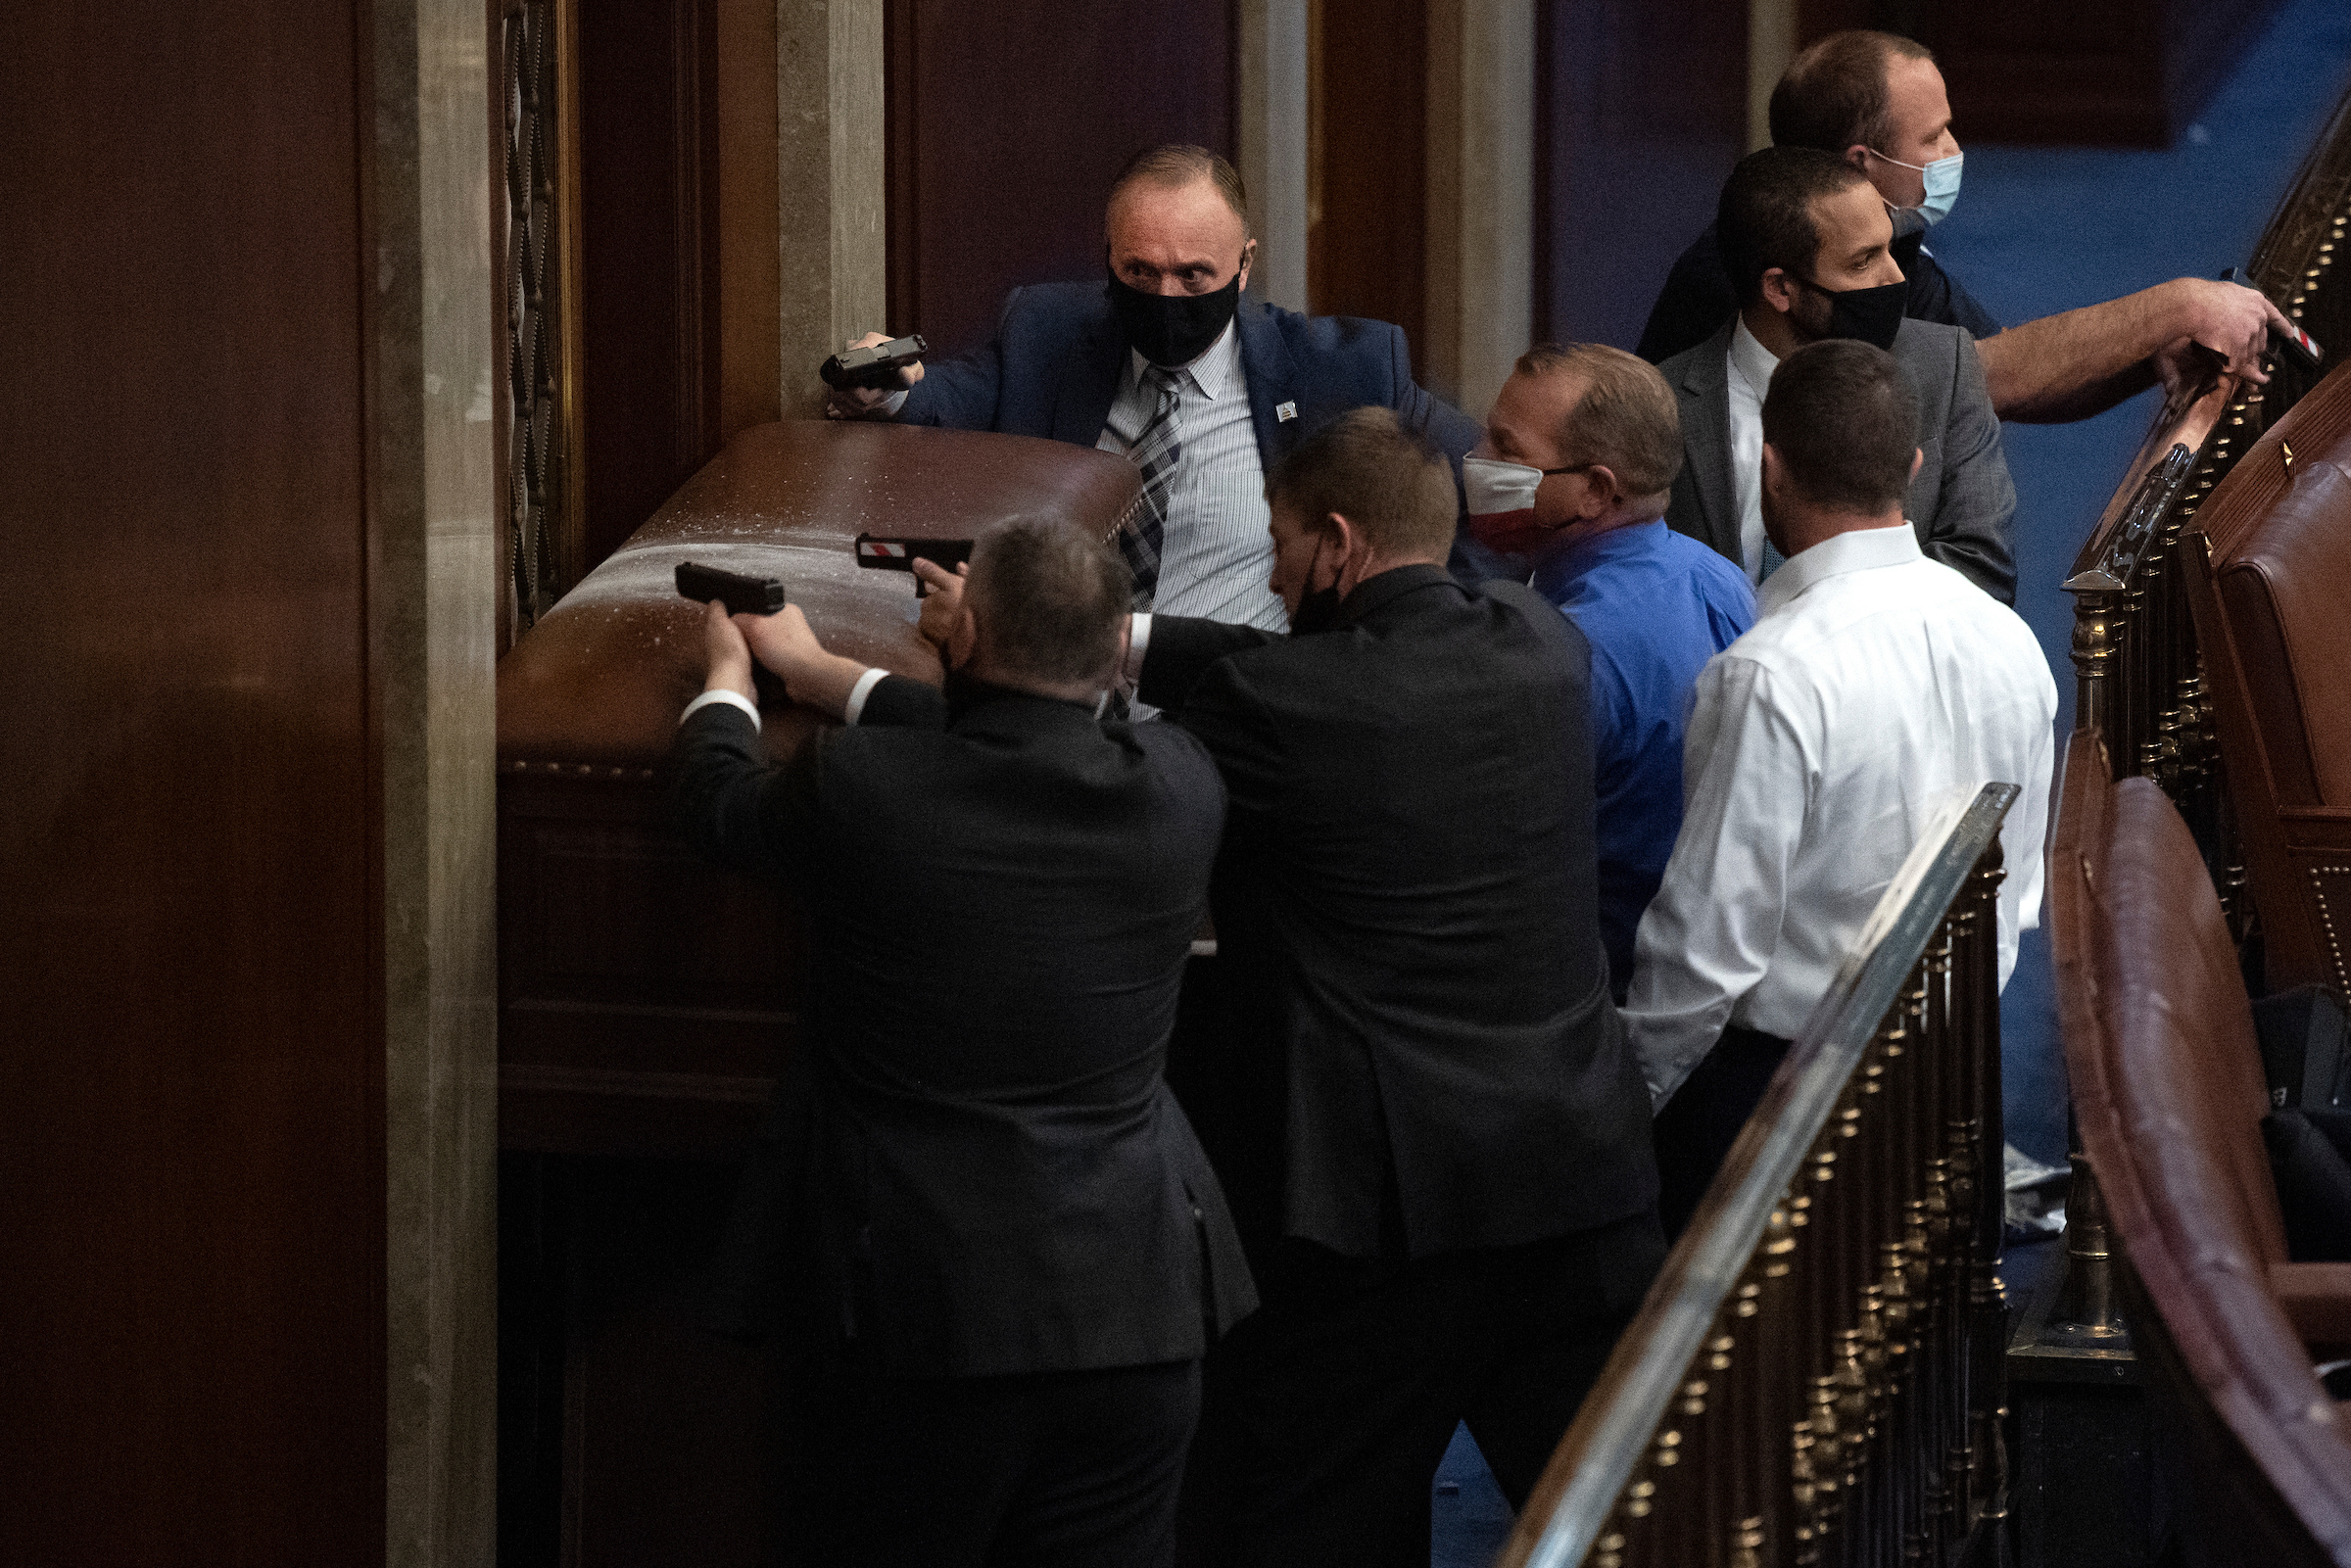 A month after Capitol riot, check out domestic terrorism legislation thumbnail